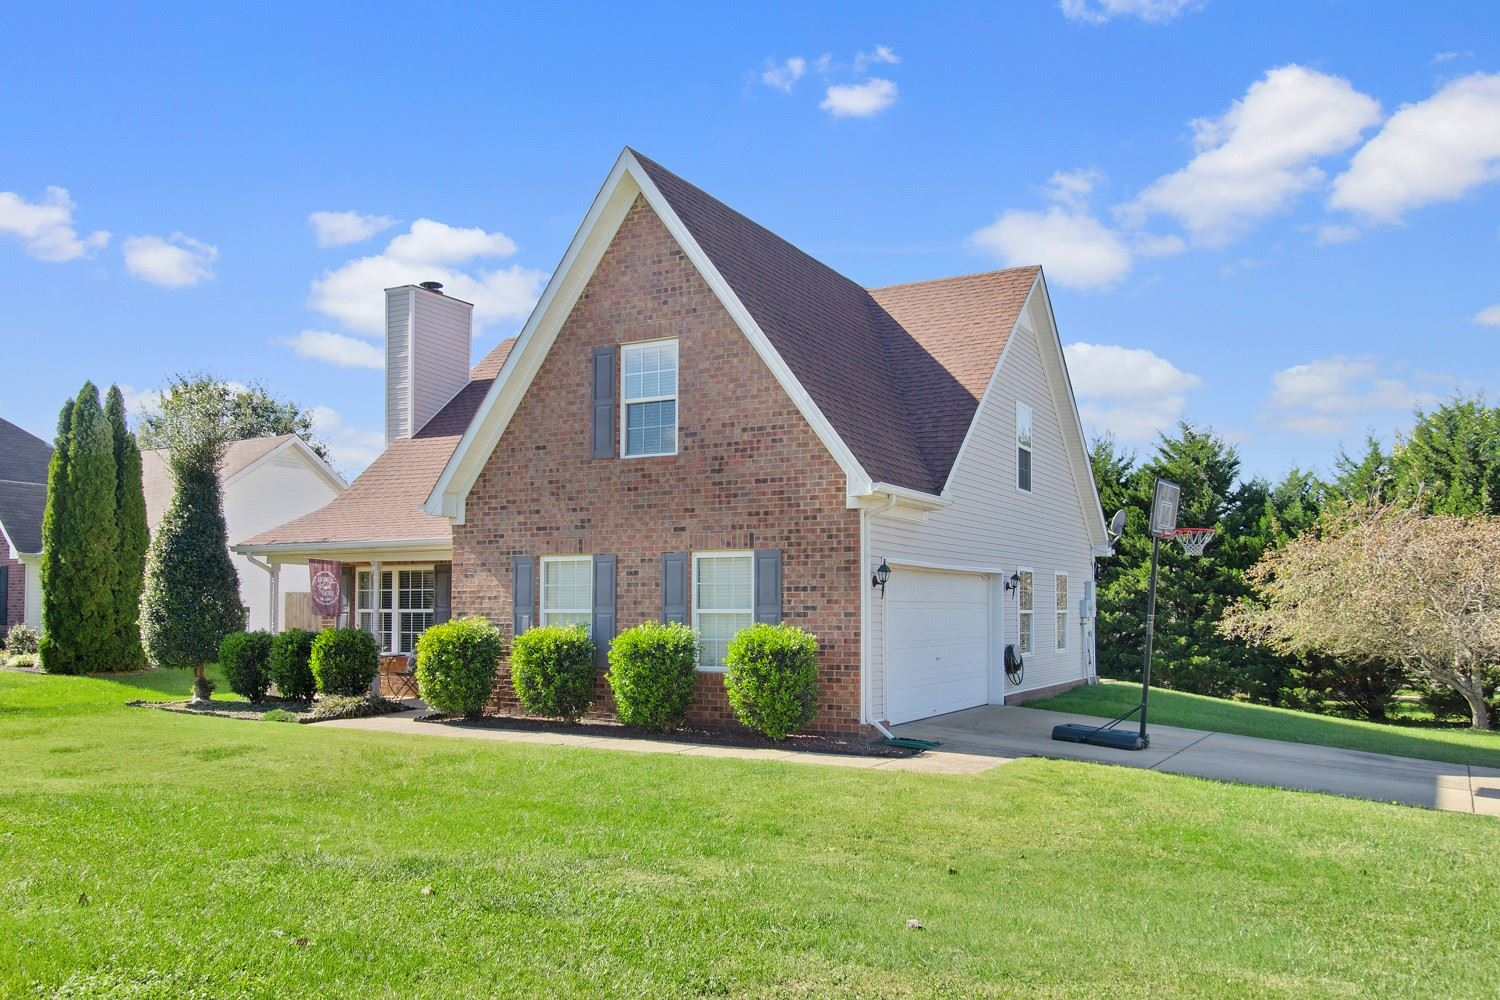 Photo of 2109 Long Meadow Dr, Spring Hill, TN 37174 (MLS # 2302153)